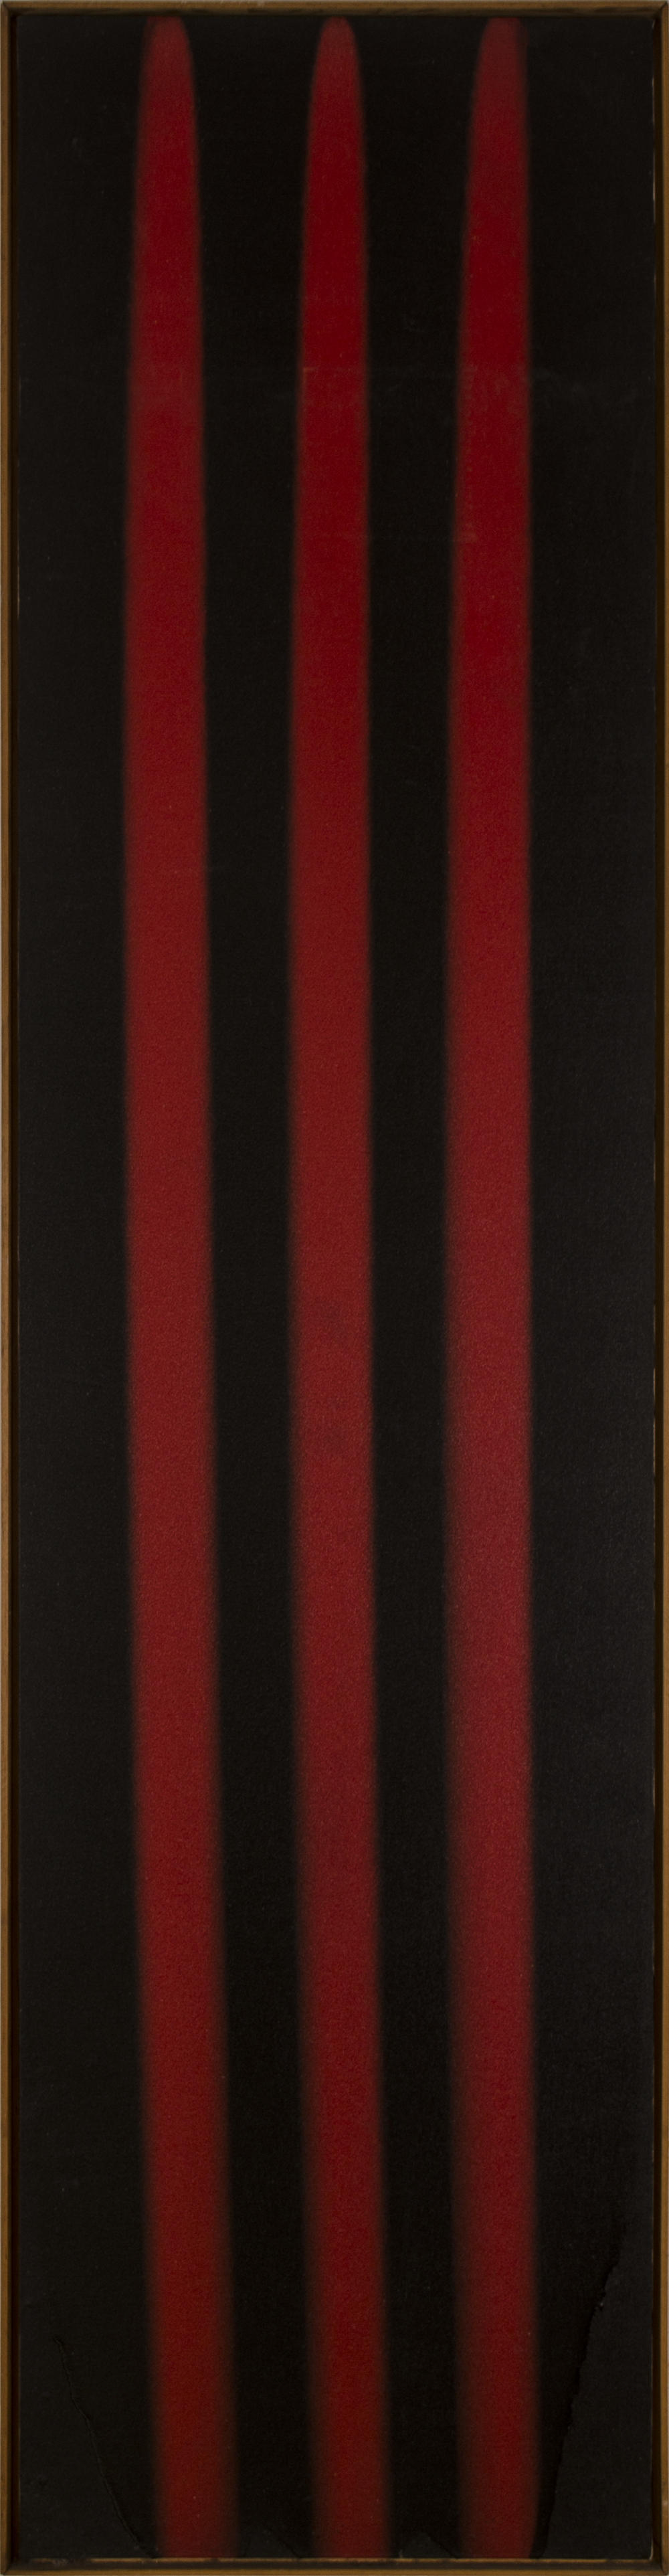 POUR- RED BLACK   1974 ©                               acrylic paint on primed canvas